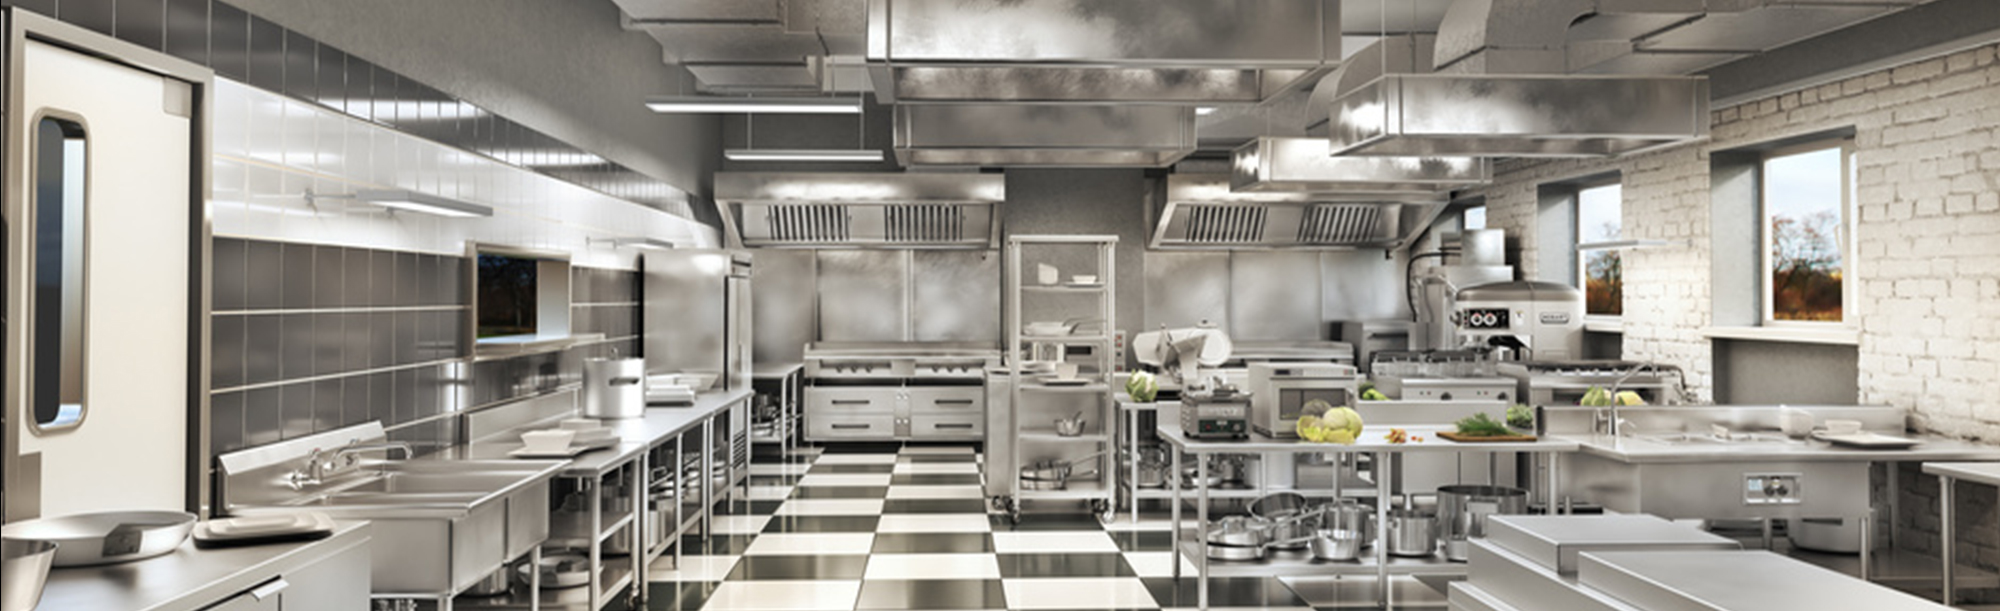 Commercial Appliance Installation Repair Service